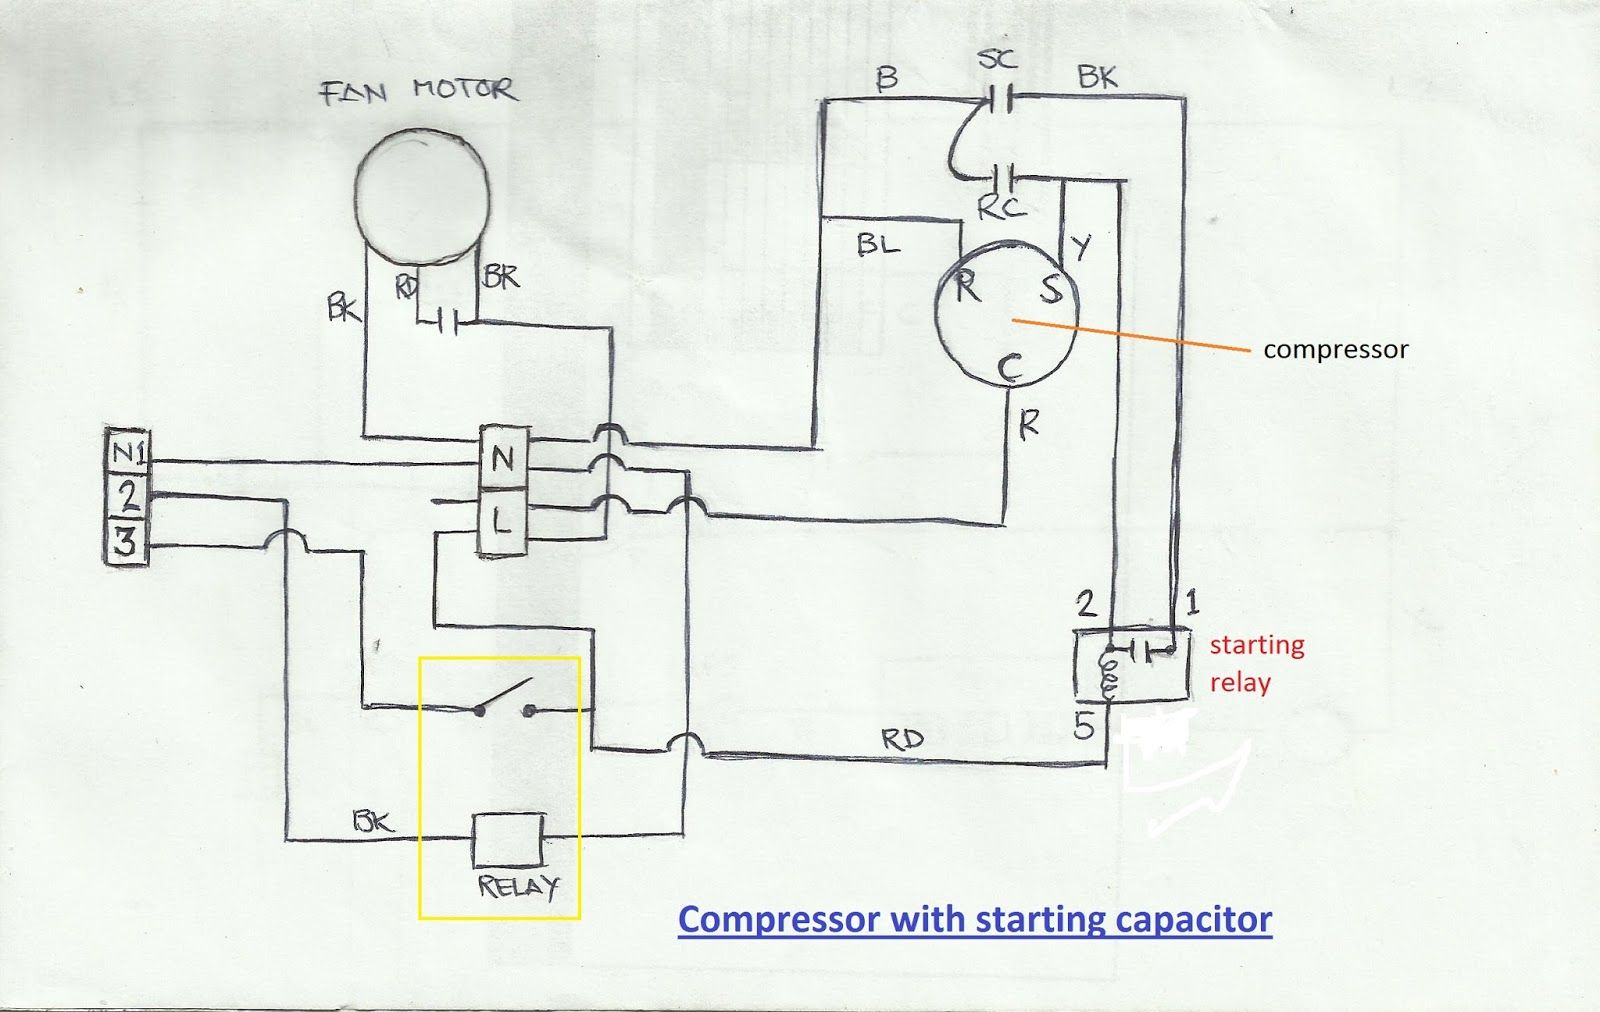 Air Conditioner Compressor Wiring Diagram Before You Call A Ac Repair Man Visit My Blog For Some Tips On How To Save Thousands In Ac Repa Kỹ Thuật Kỹ Thuật điện